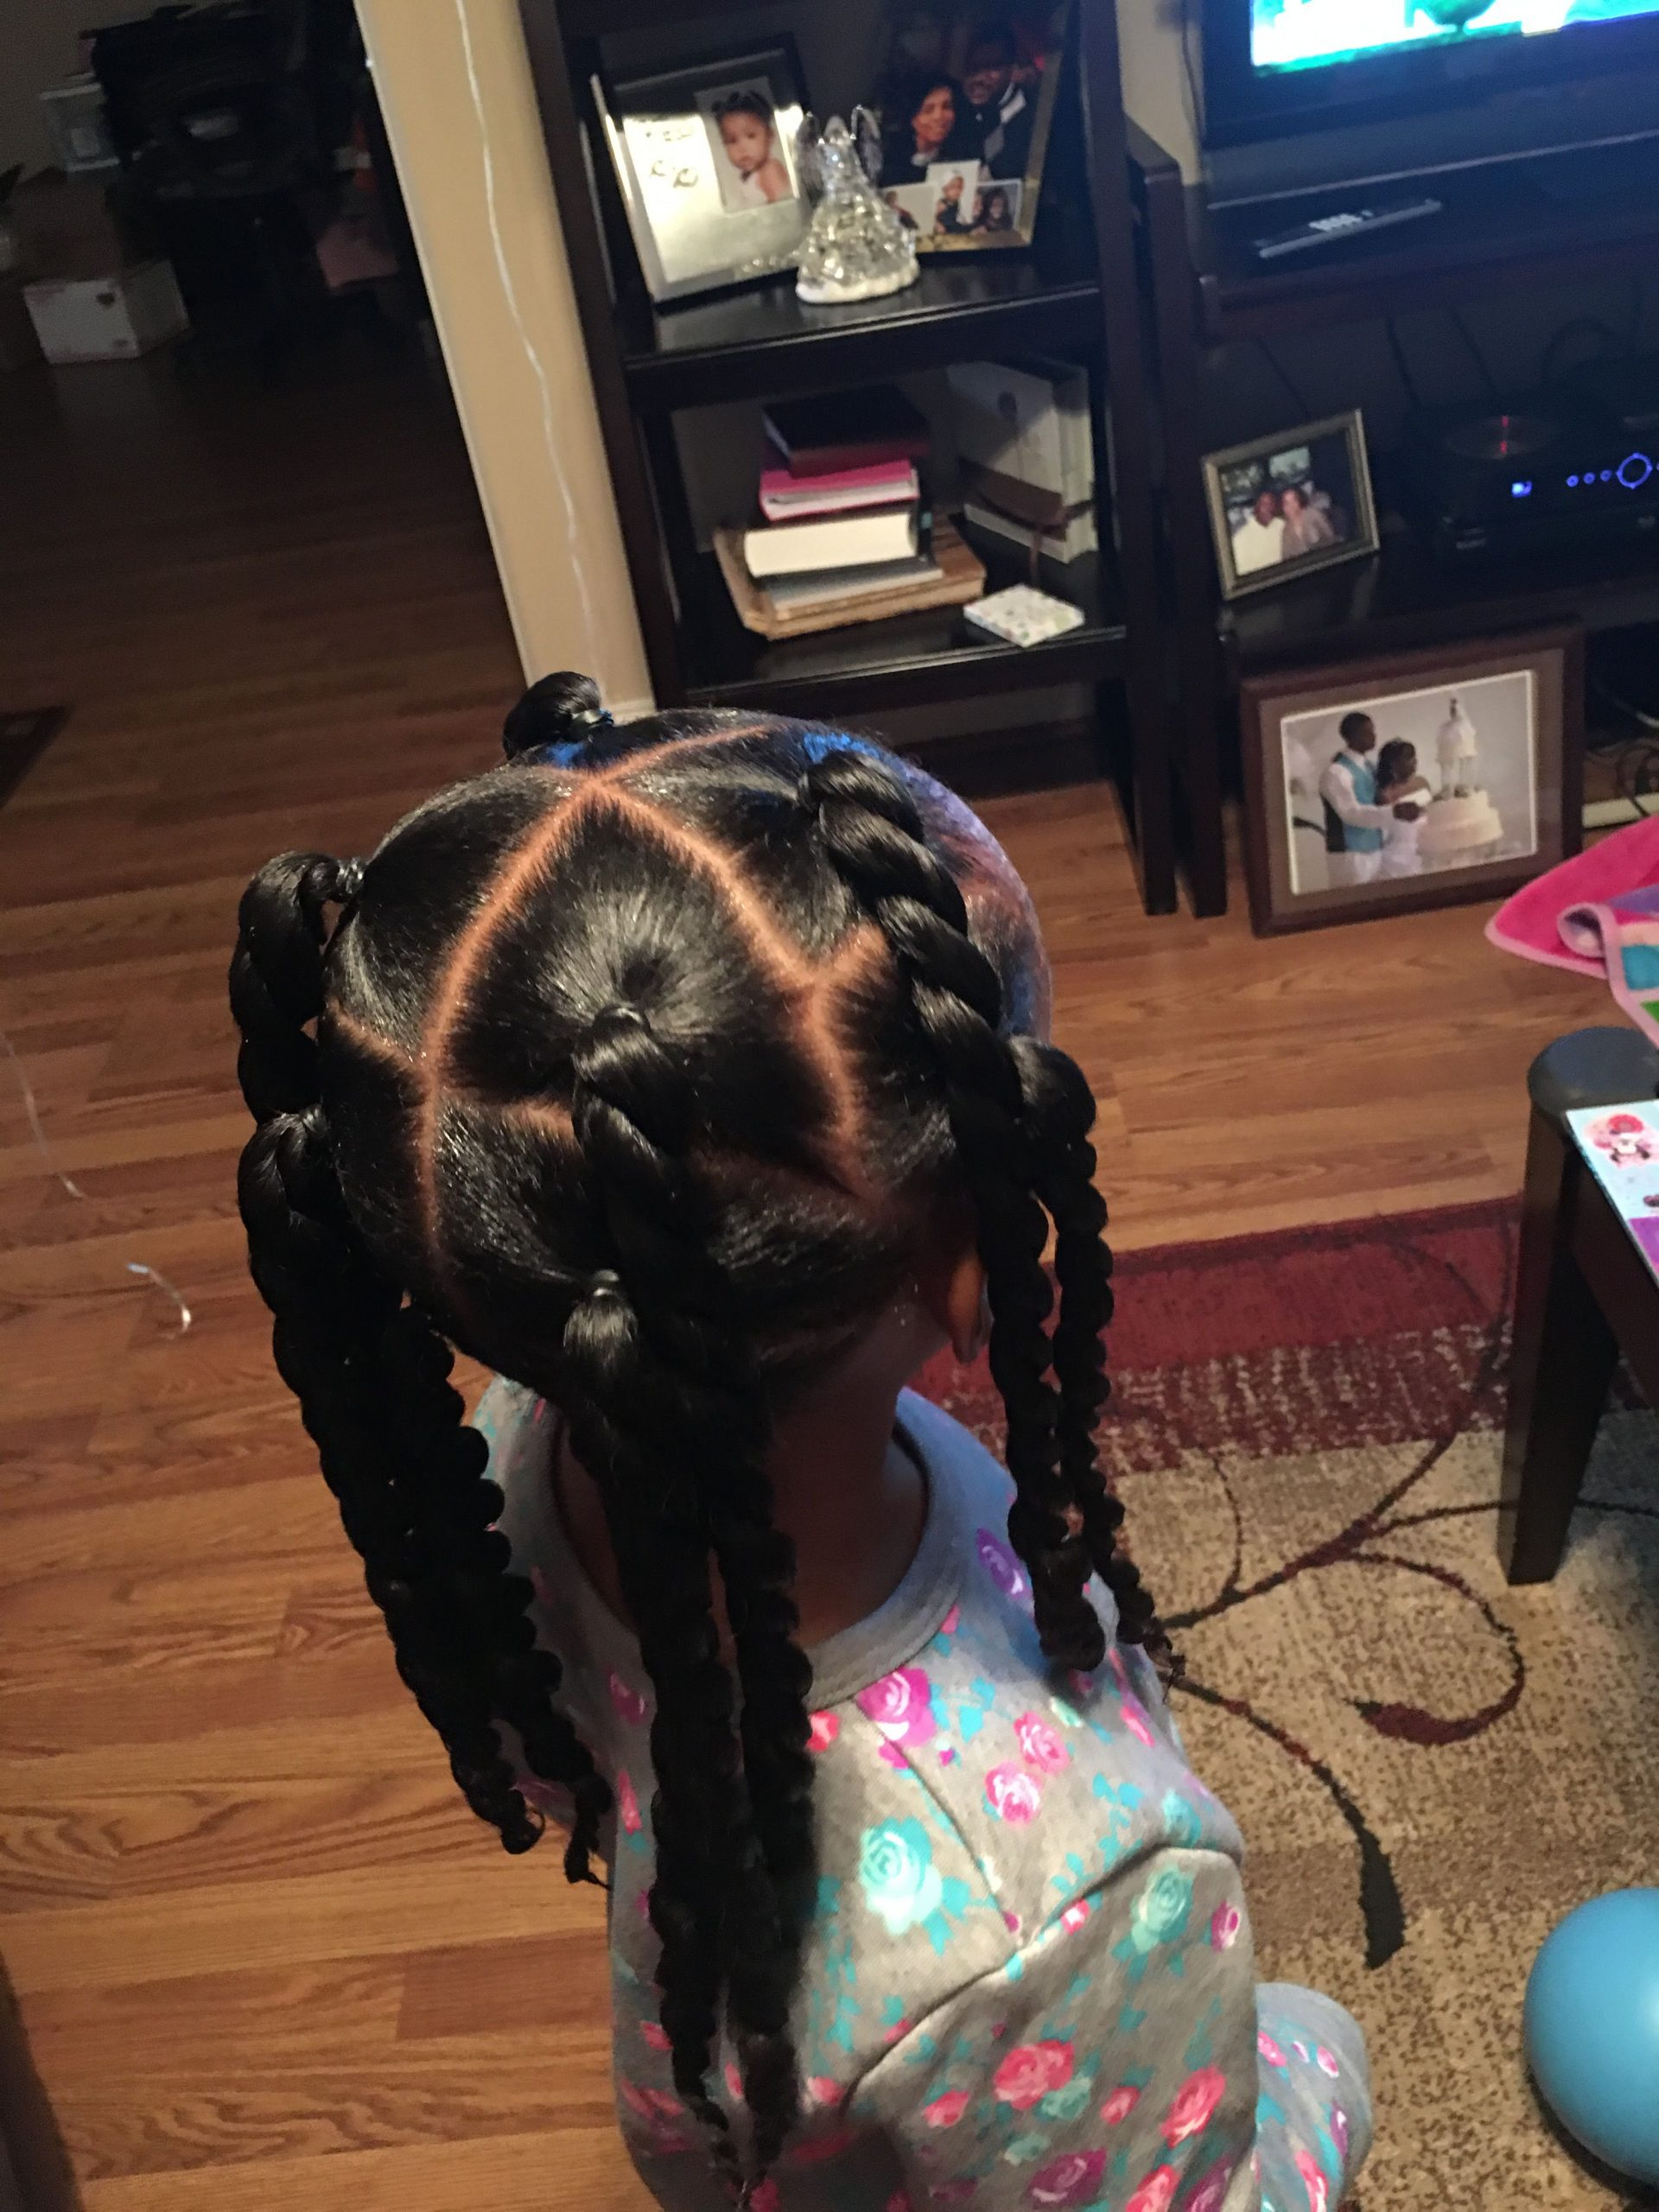 Cute hairstyles for kids hairstyleforblackwomen.net 45 scaled